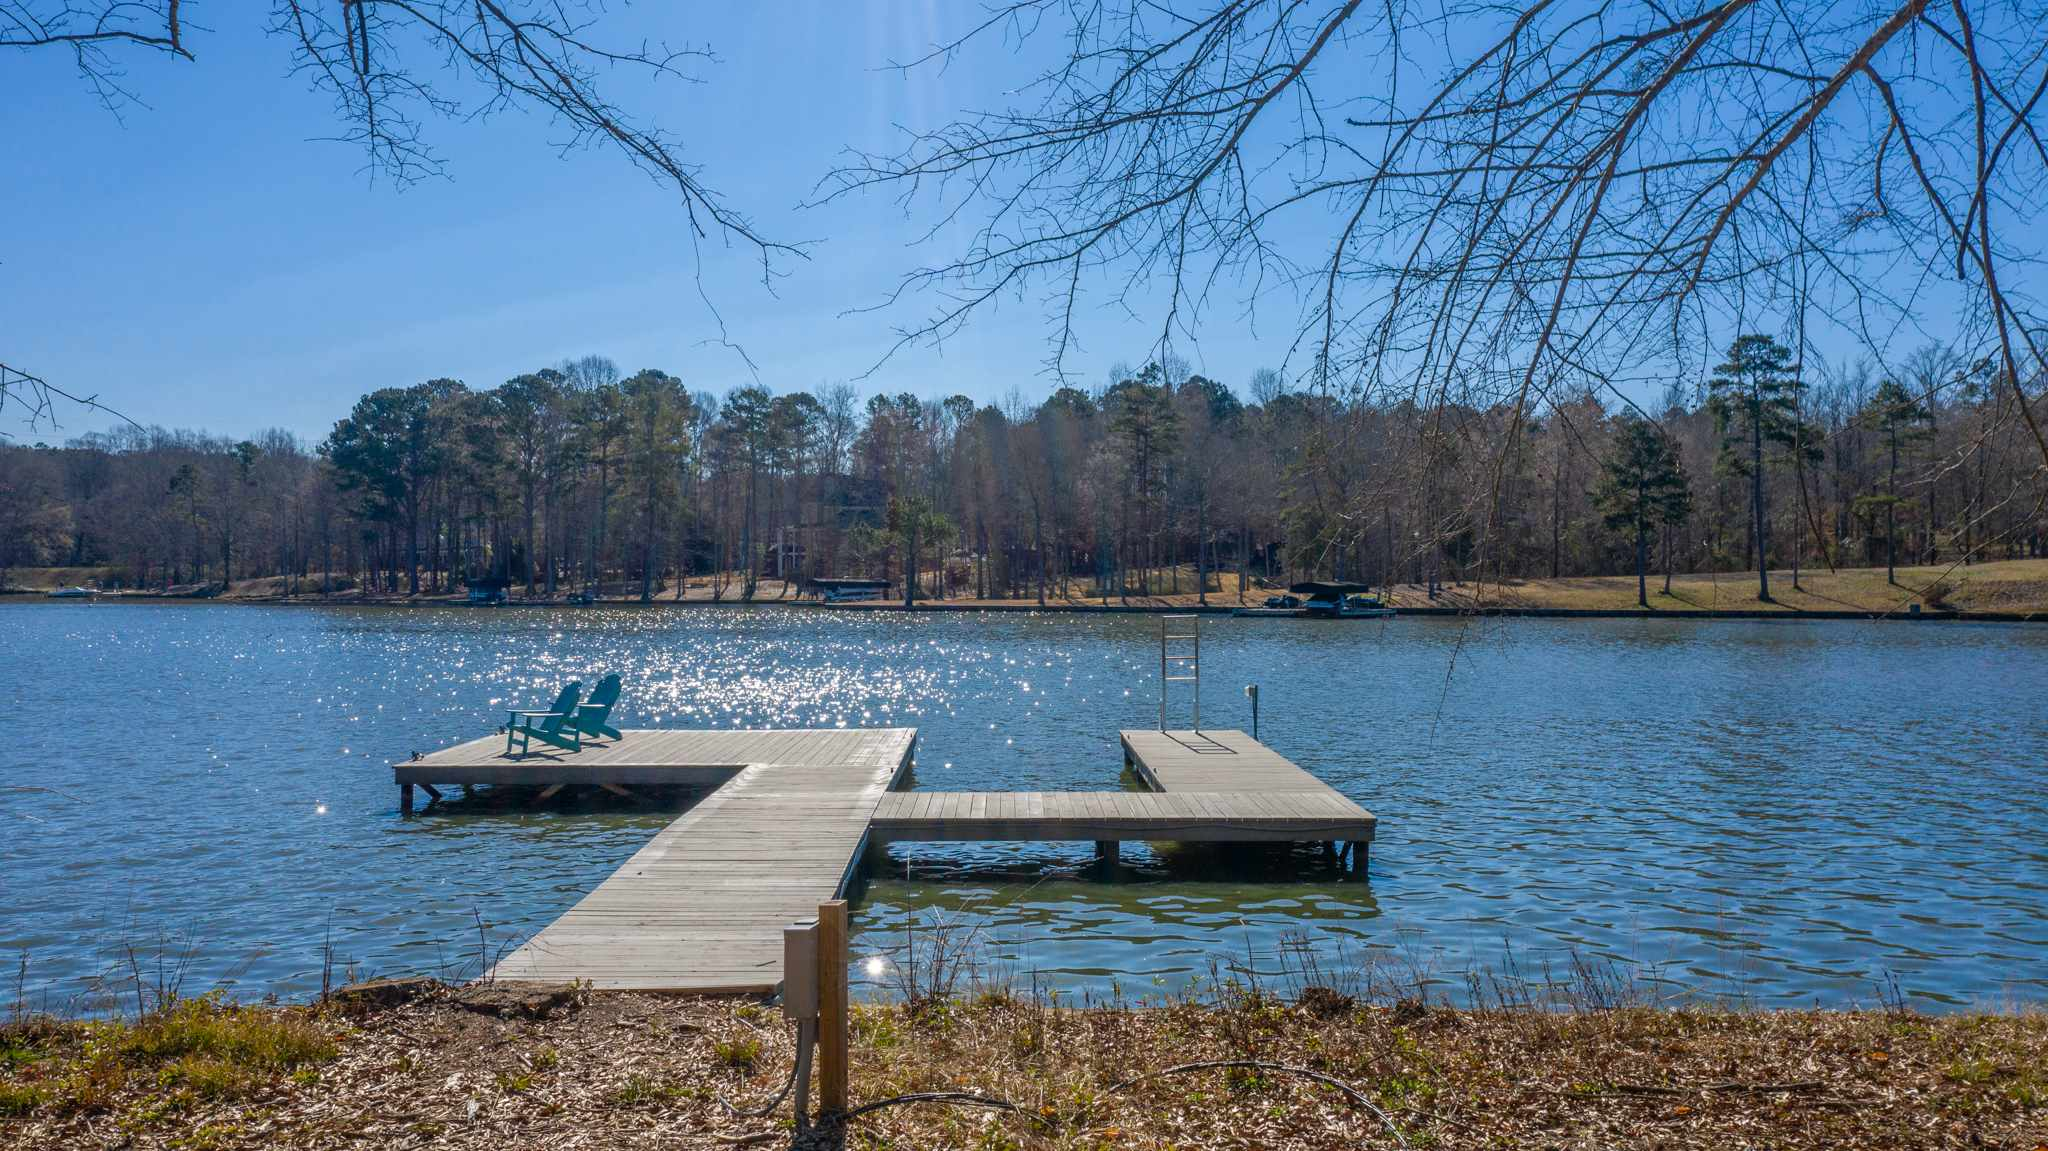 Property for sale at 254 LOCH WAY, Eatonton,  Georgia 31024